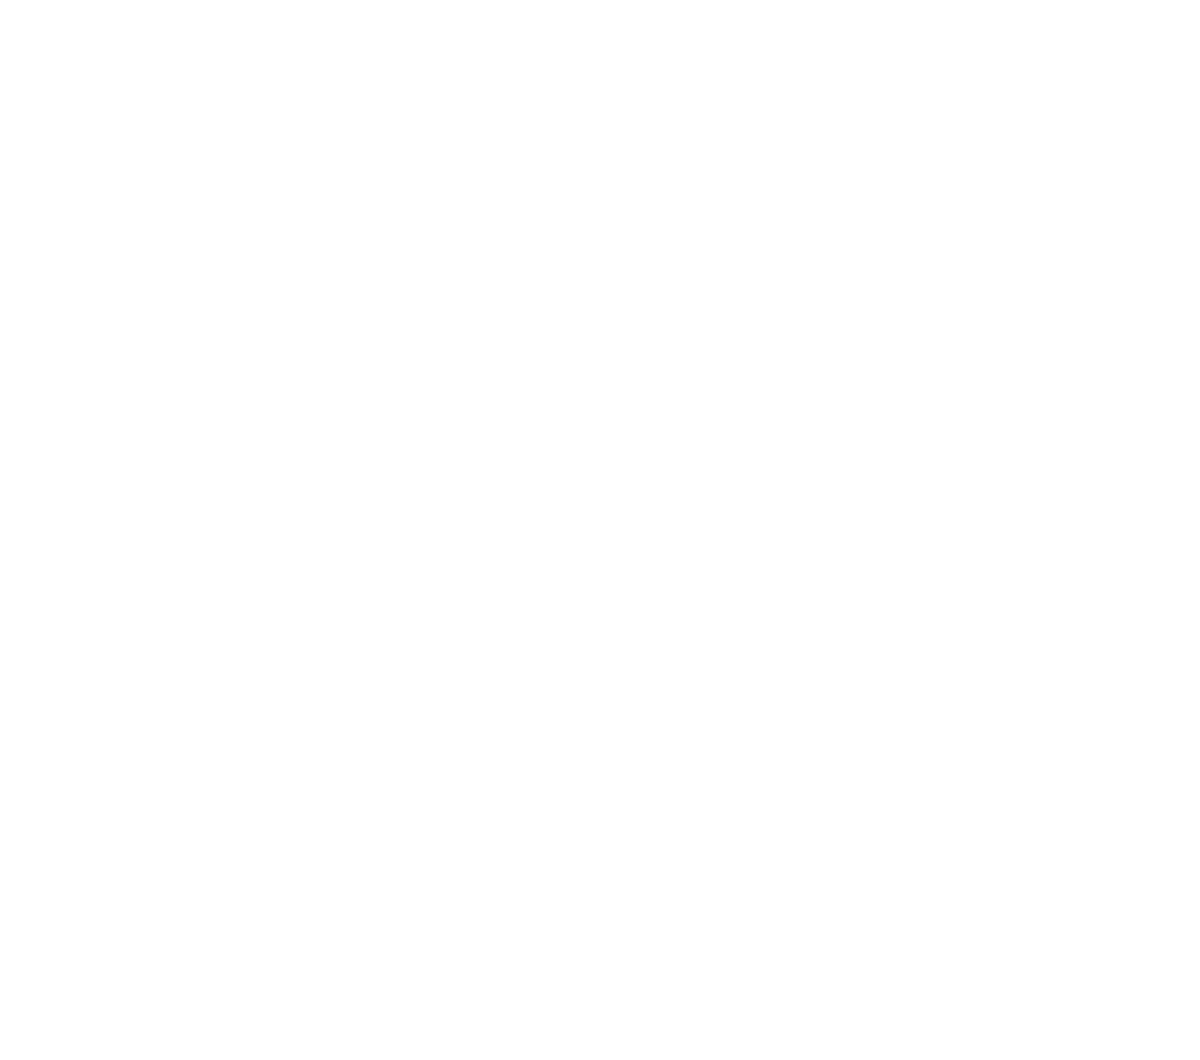 Déifferdenger Big Band